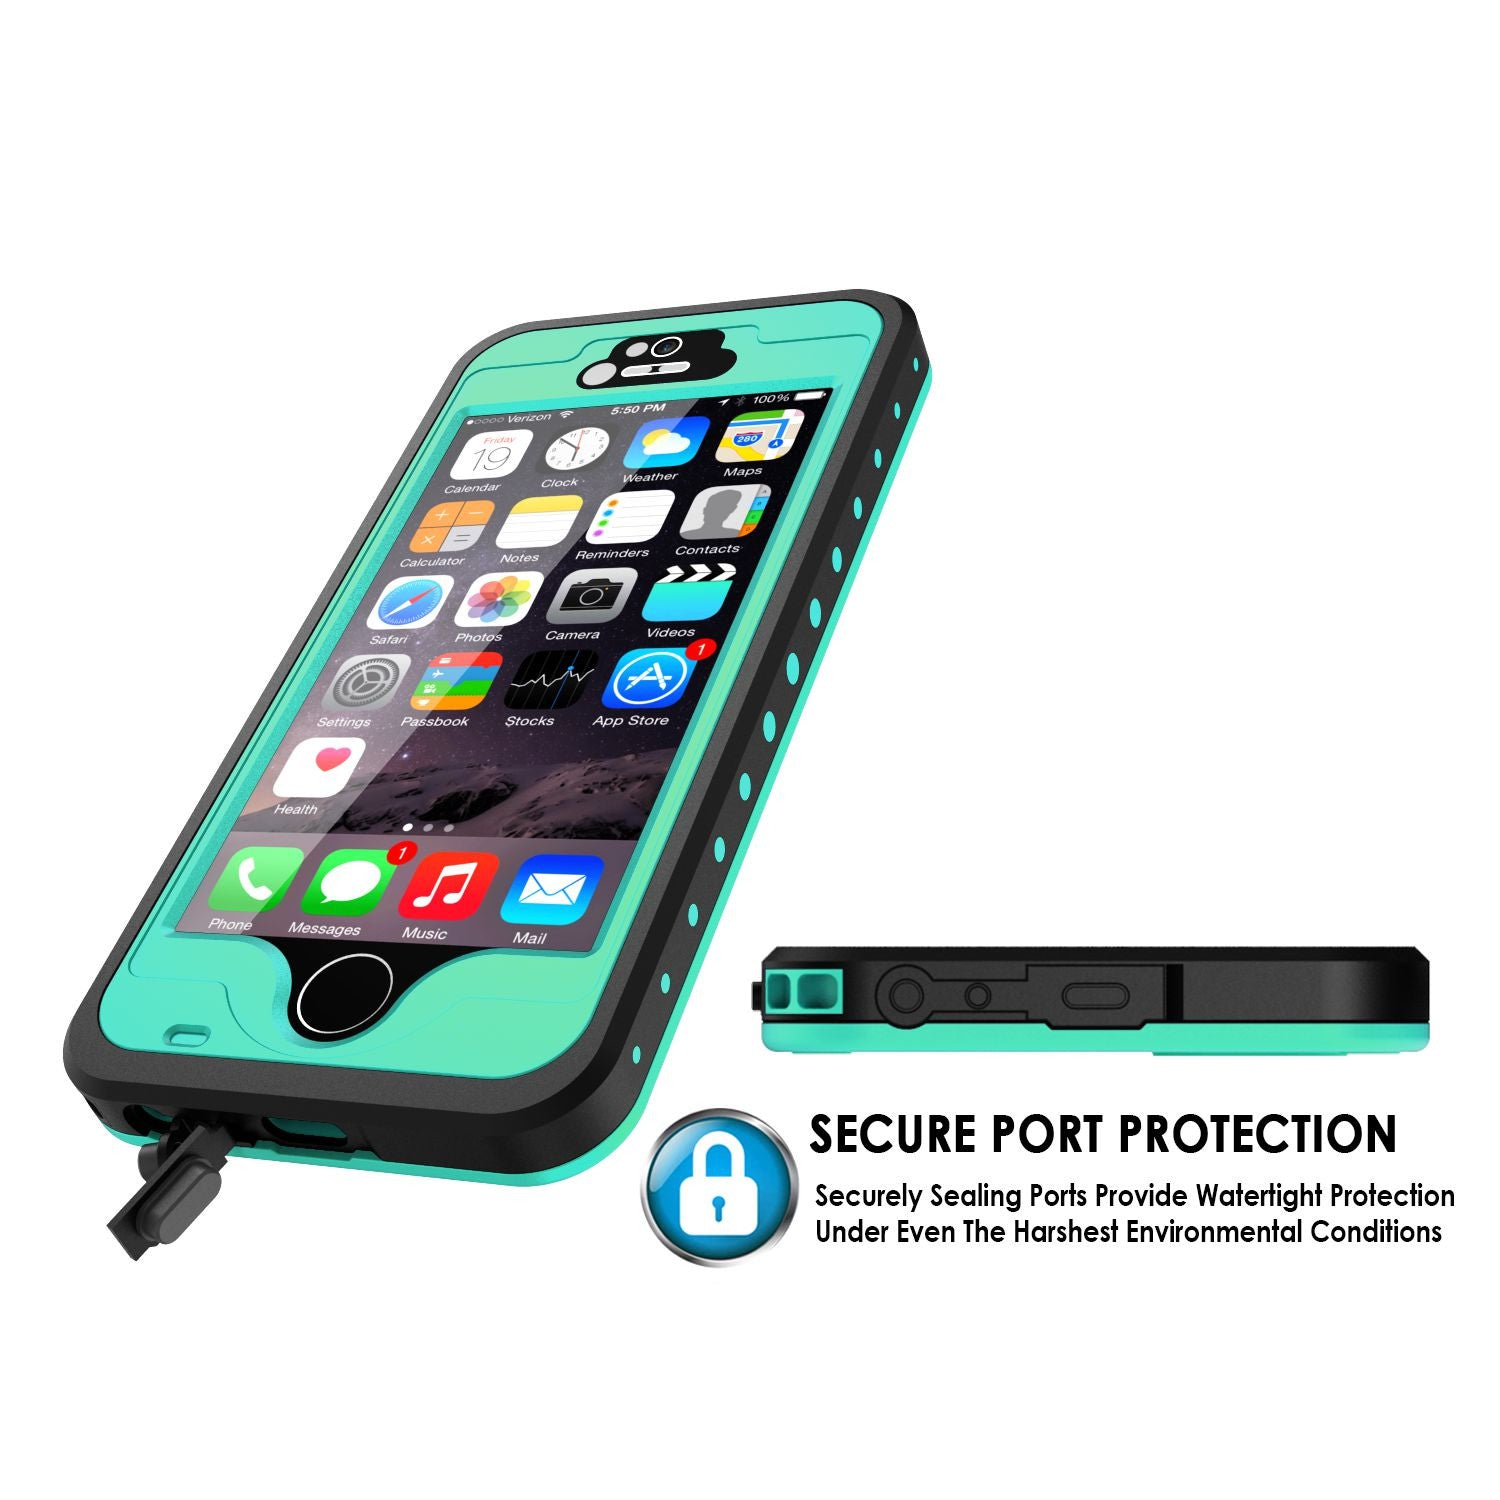 iPhone 5S/5 Waterproof Case, PunkCase StudStar Teal Case Water/Shock/Dirt Proof | Lifetime Warranty